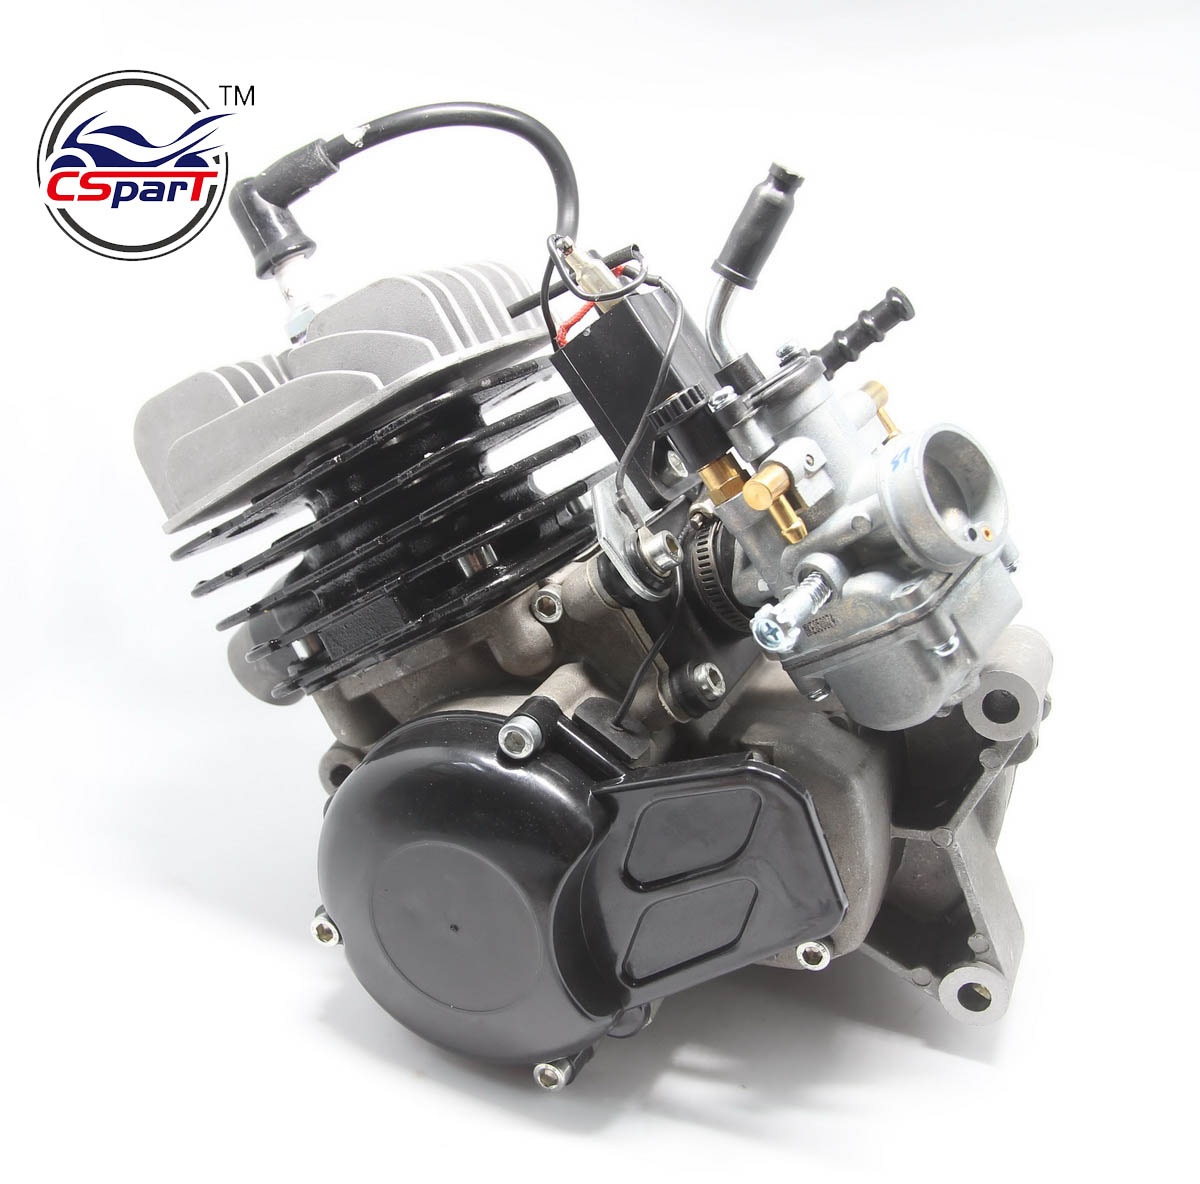 49CC Air Cooled Engine For KTM 50 SX 50 SX PRO SENIOR Dirt Pit Cross Bike With Carburetor